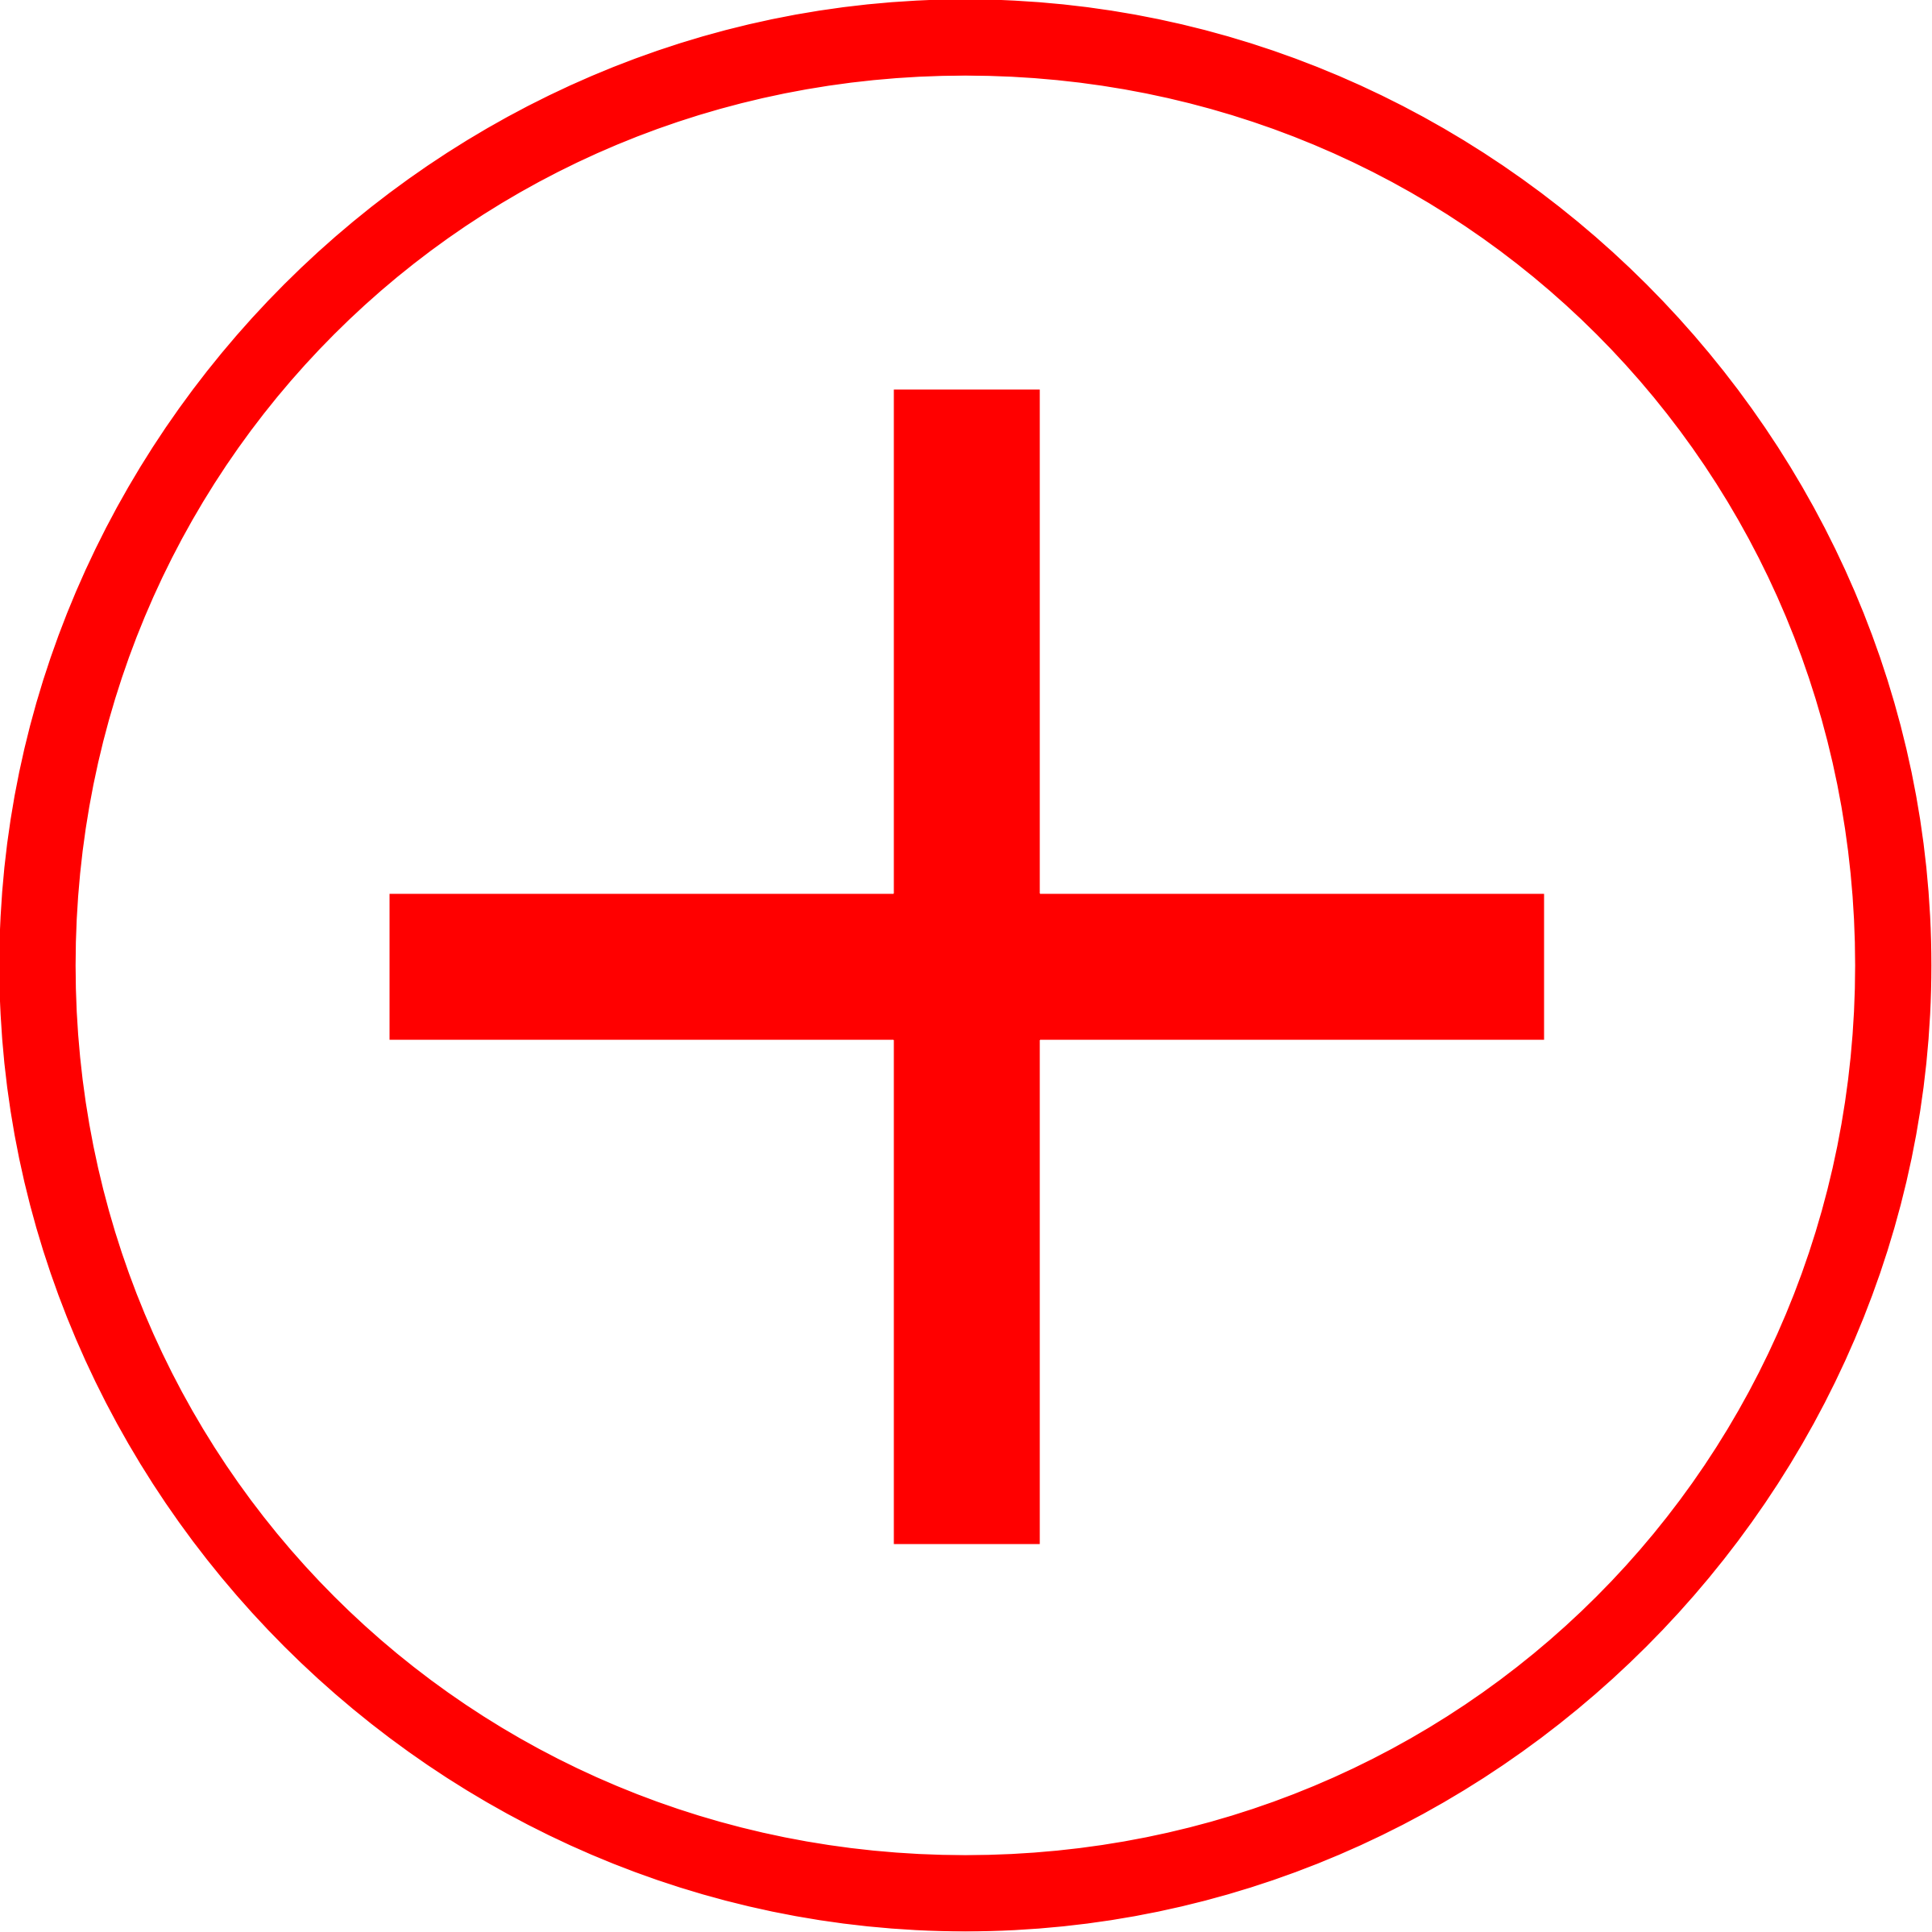 Icon big image png. Health clipart first aid cross